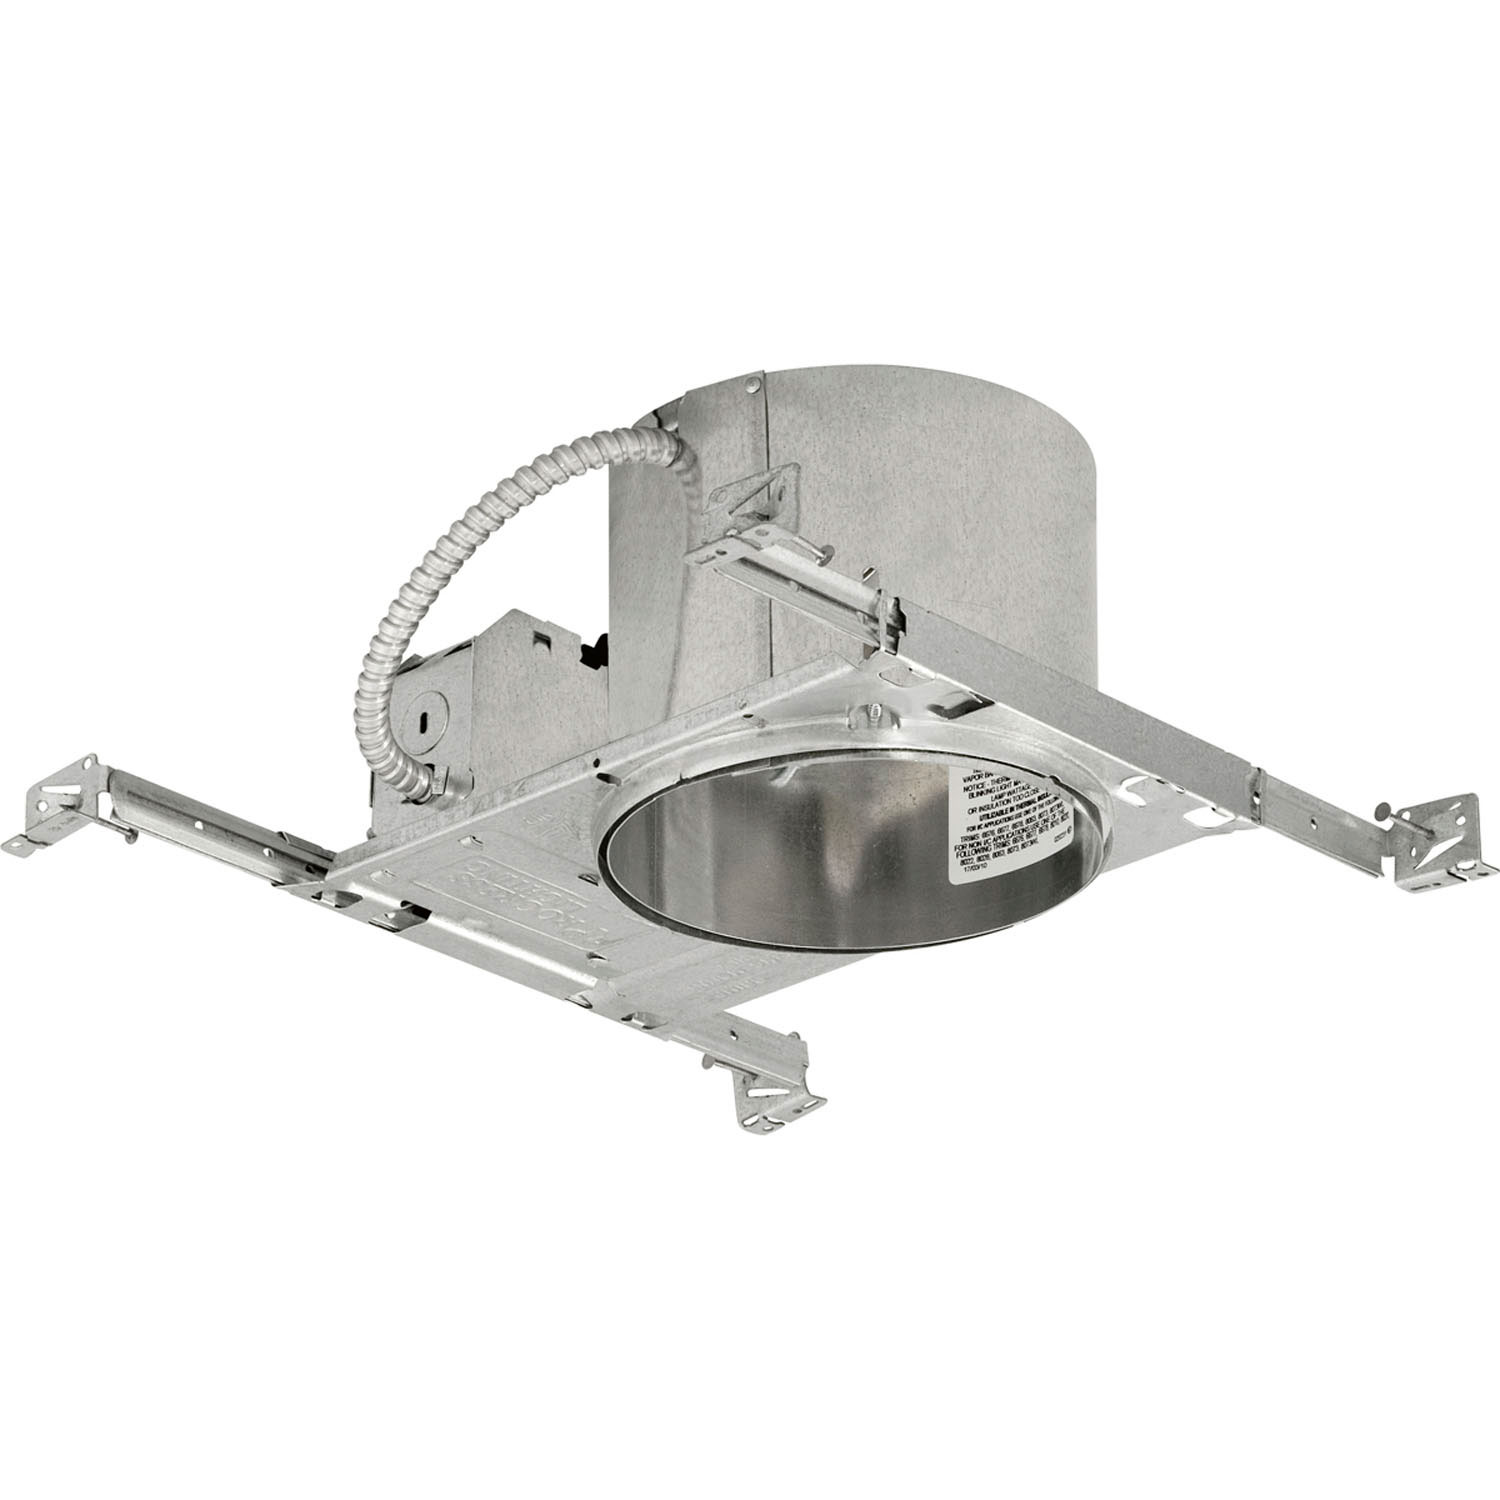 6inch Shallow New Construction Ic Non Ic Housing From The Recessed Housing Collection By Progress Canada P86 Tg